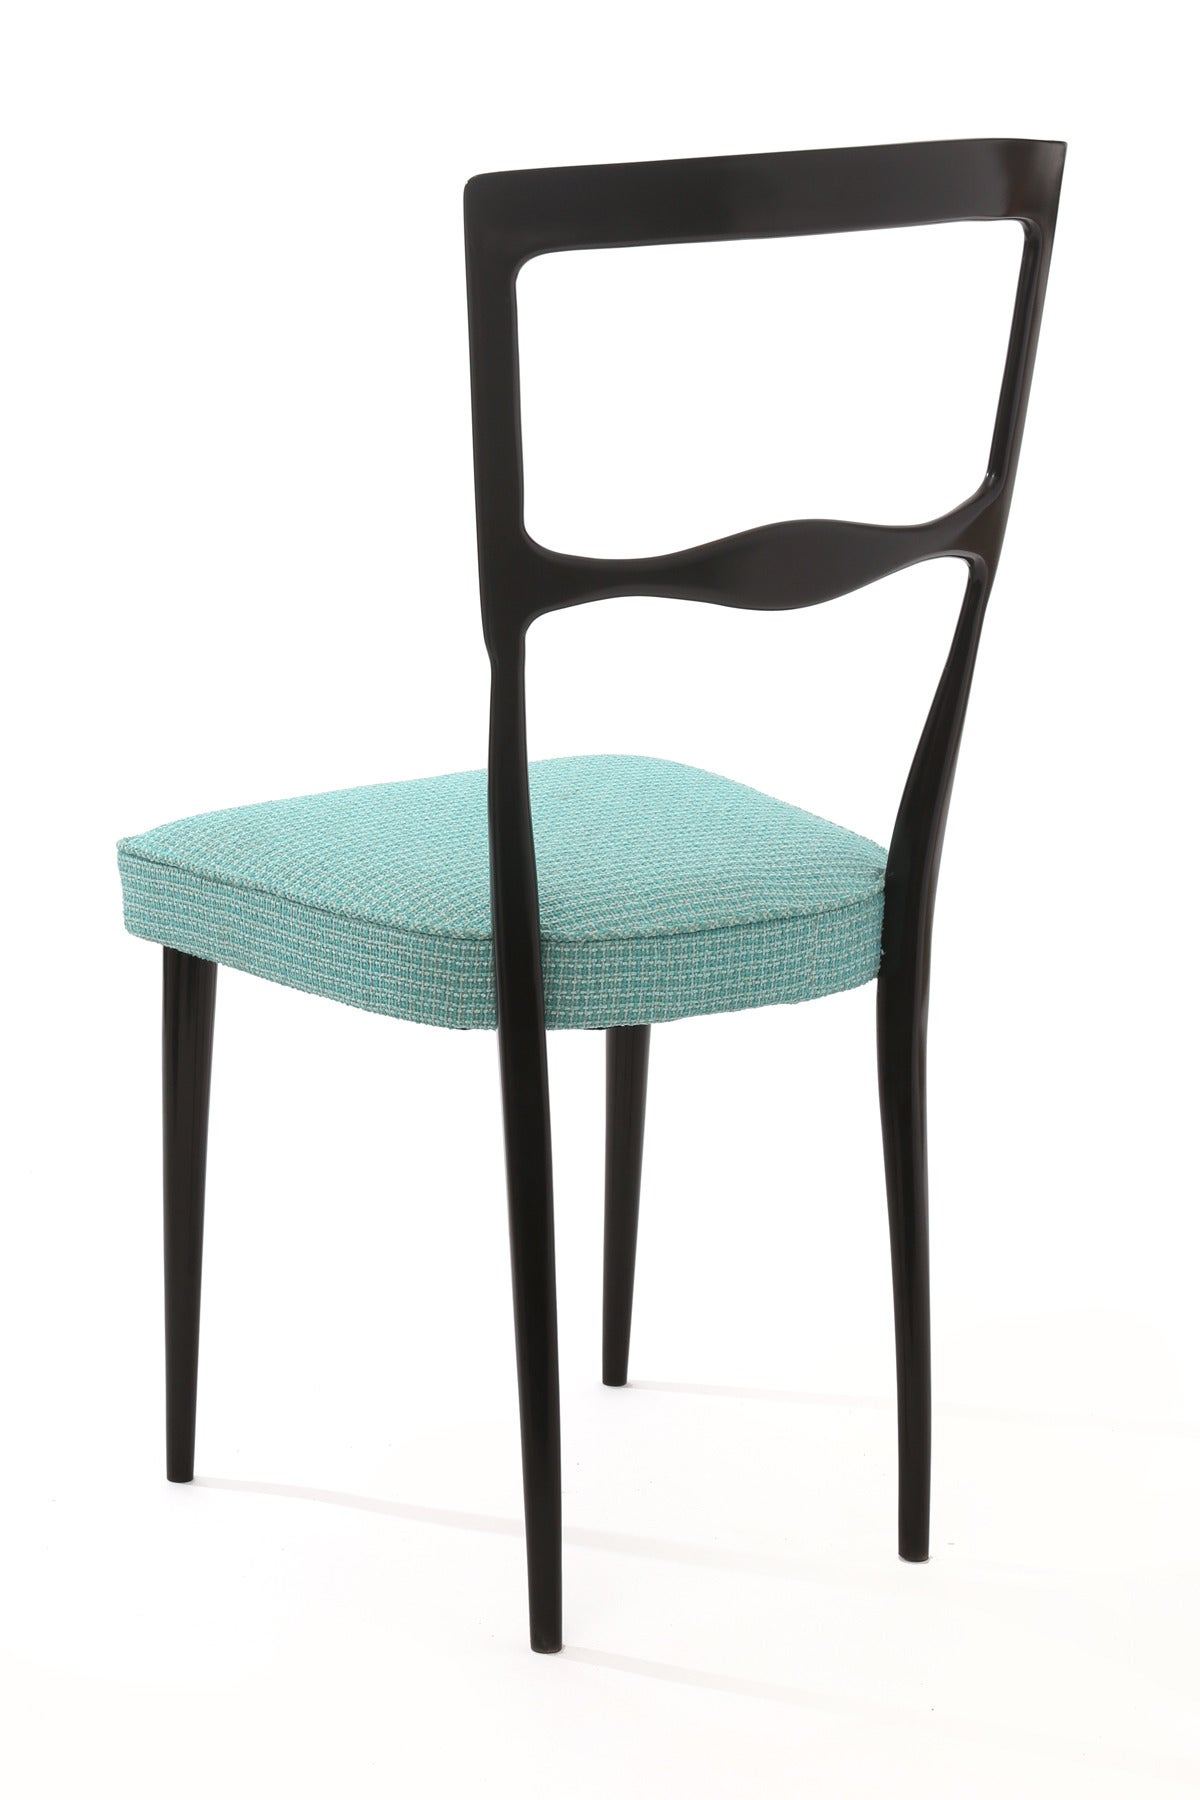 Six Ebonized Maple Italian Dining Chairs For Sale at 1stdibs